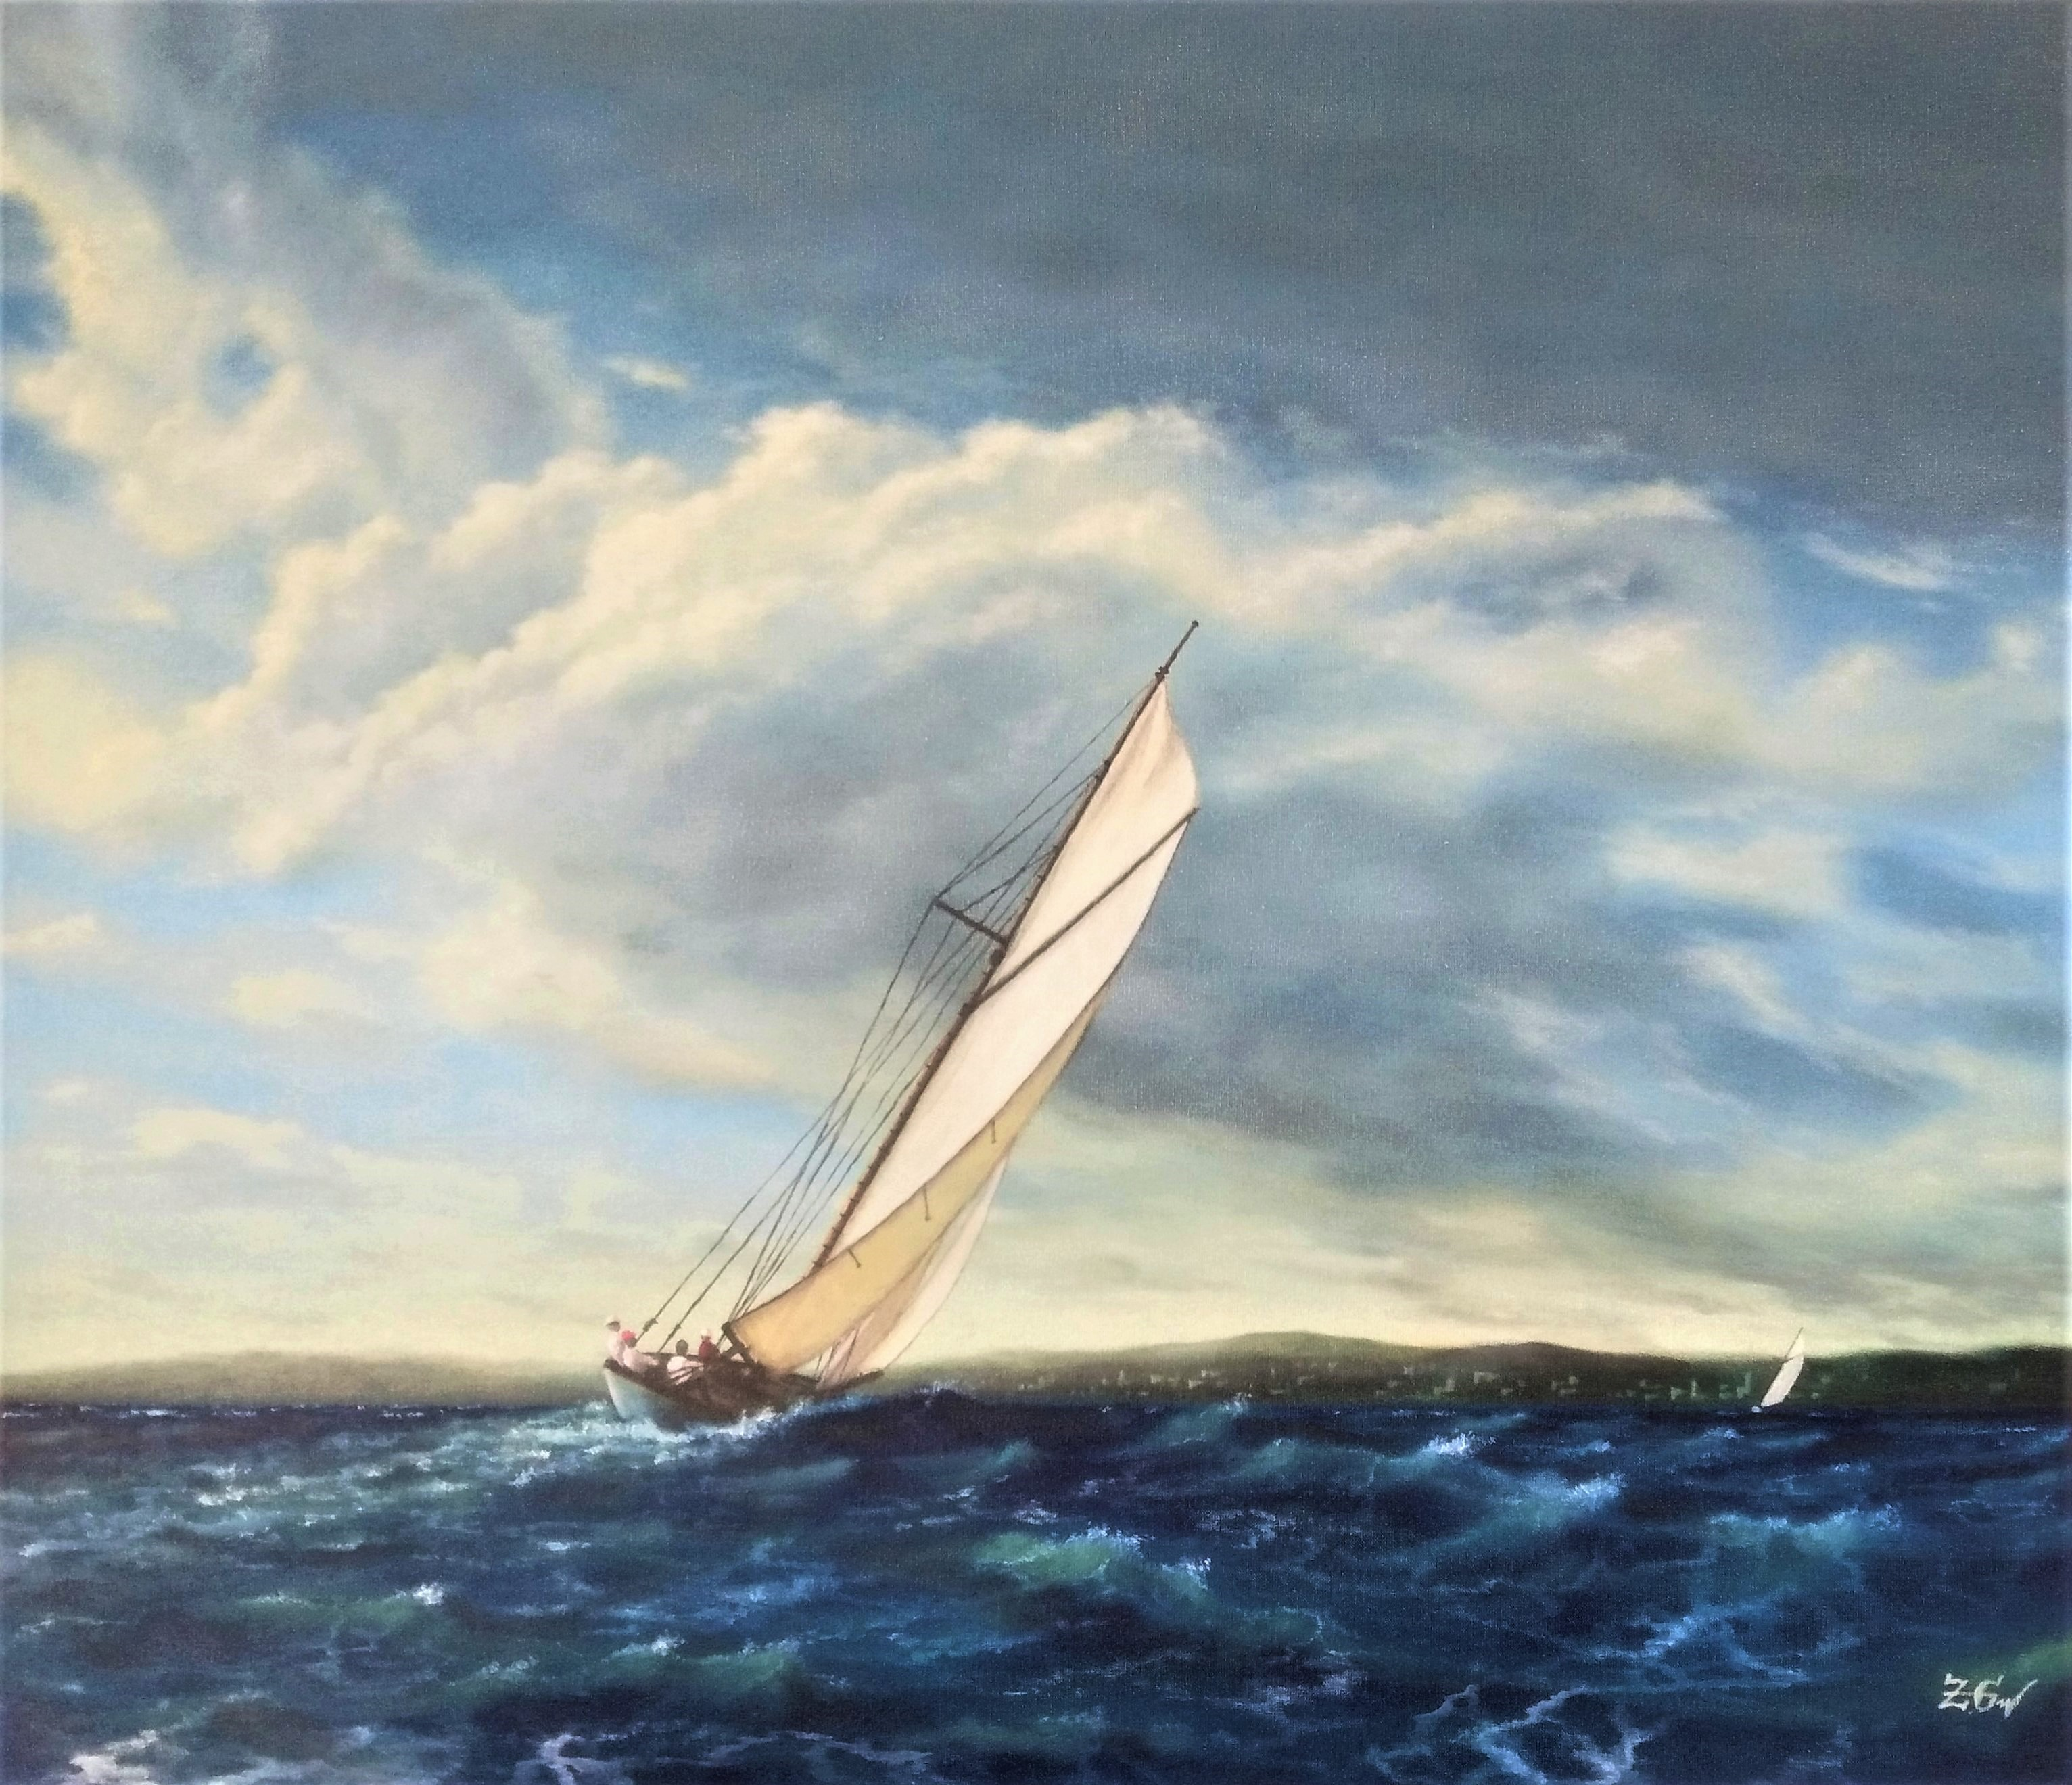 Vintage yacht in action N3 artwork by Zigmars Grundmanis - art listed for sale on Artplode